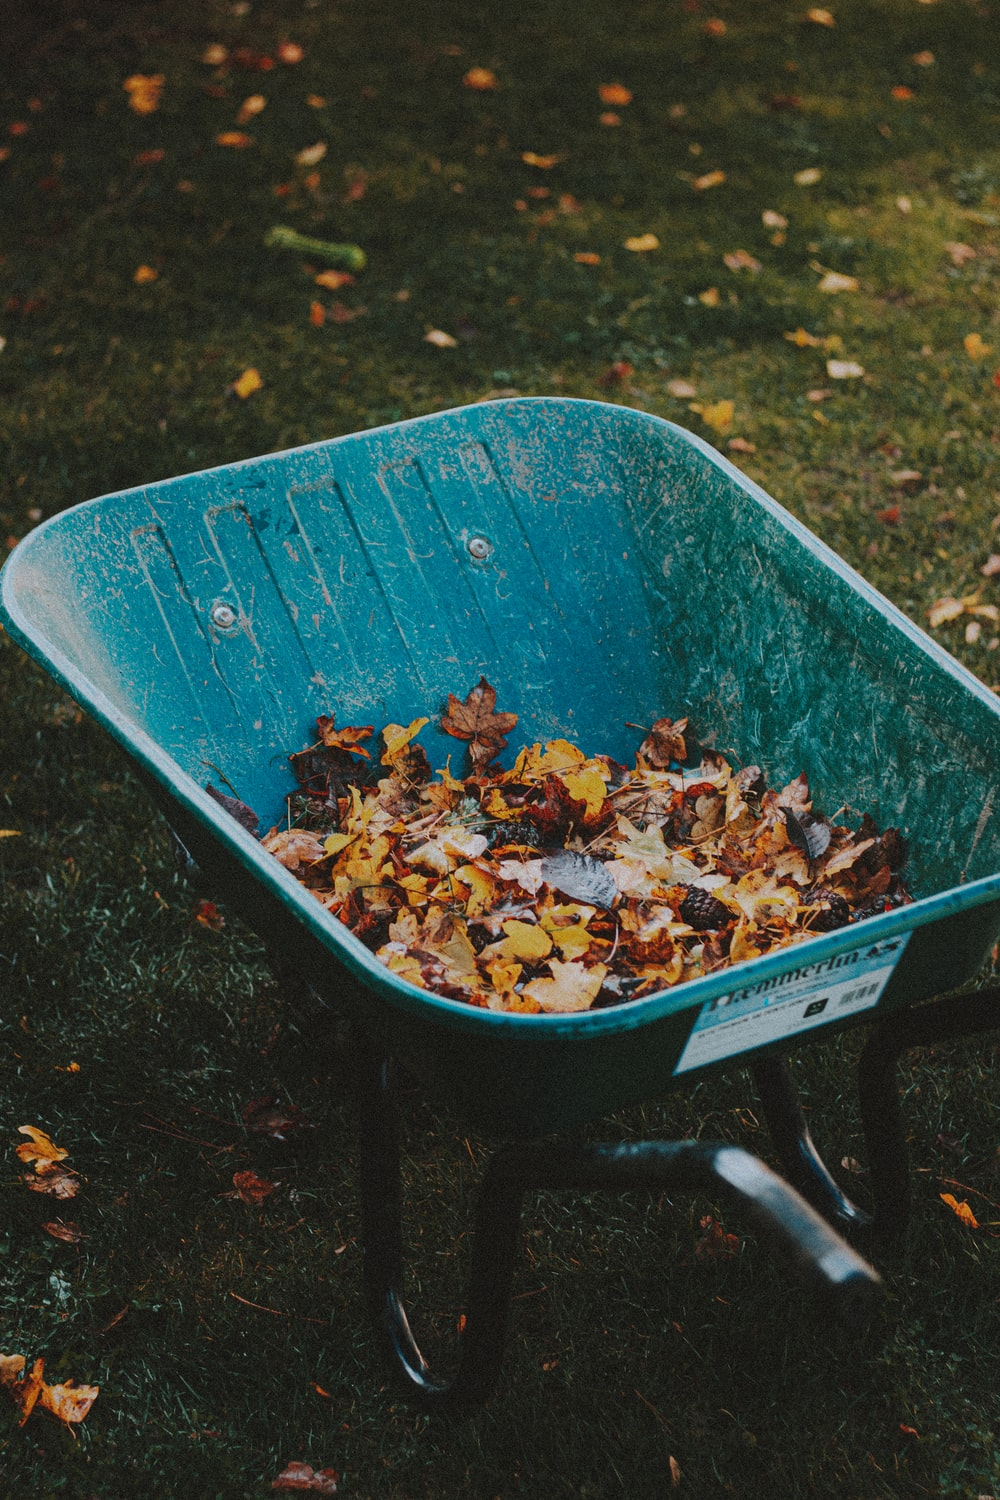 dried leaves on blue plastic container